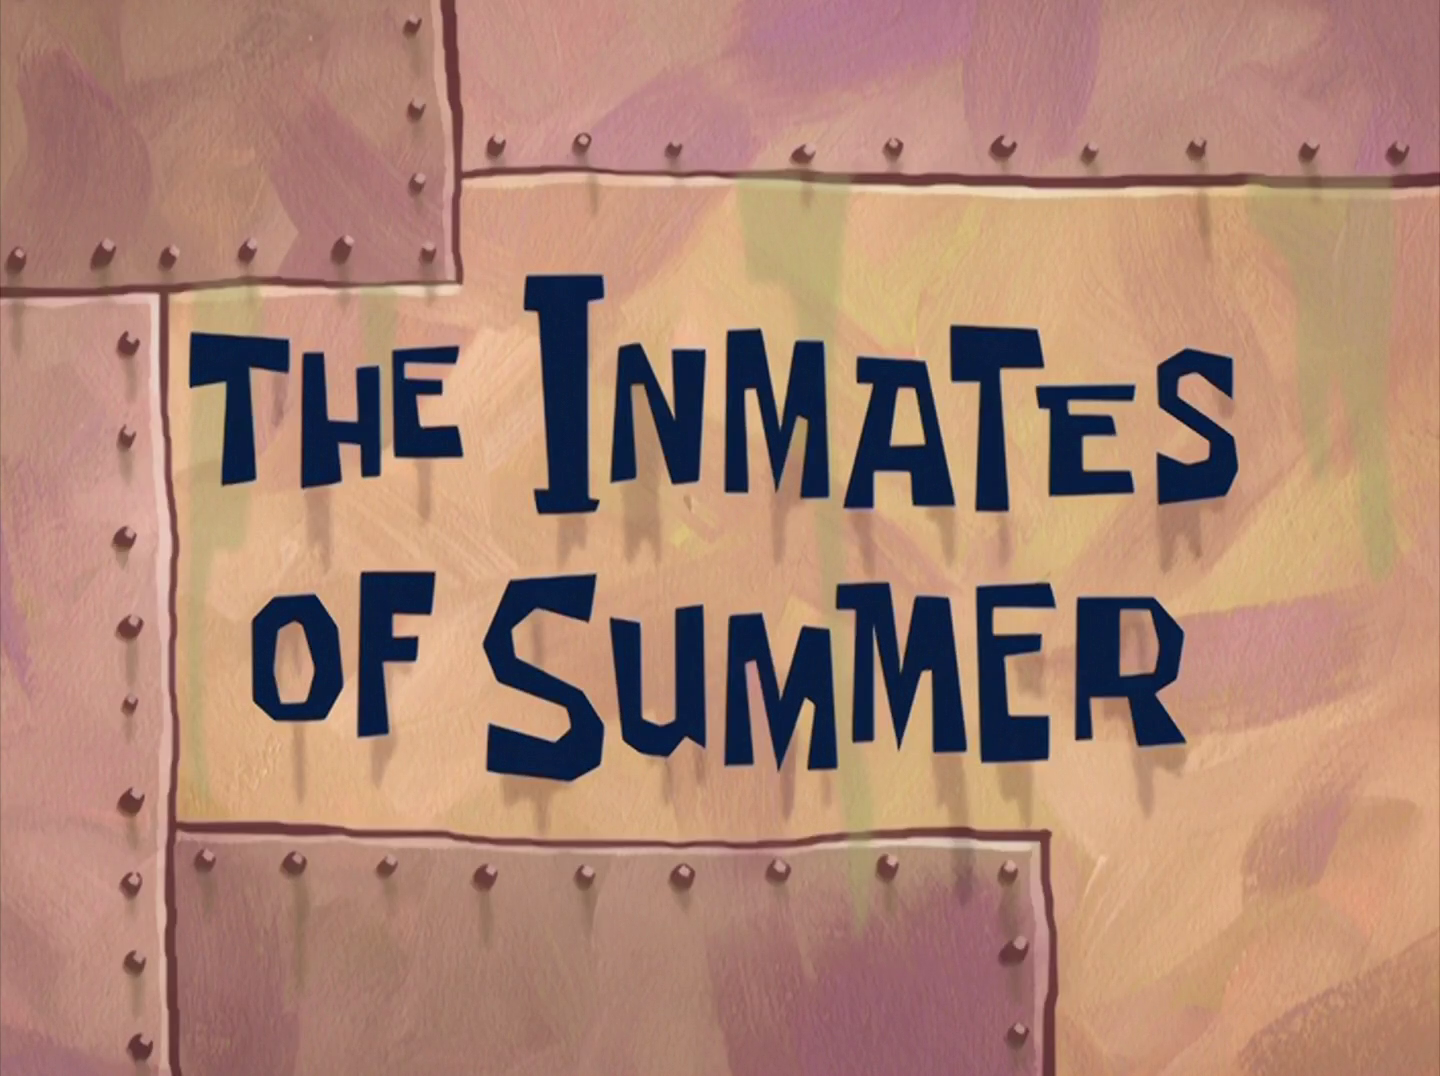 The Inmates of Summer/transcript